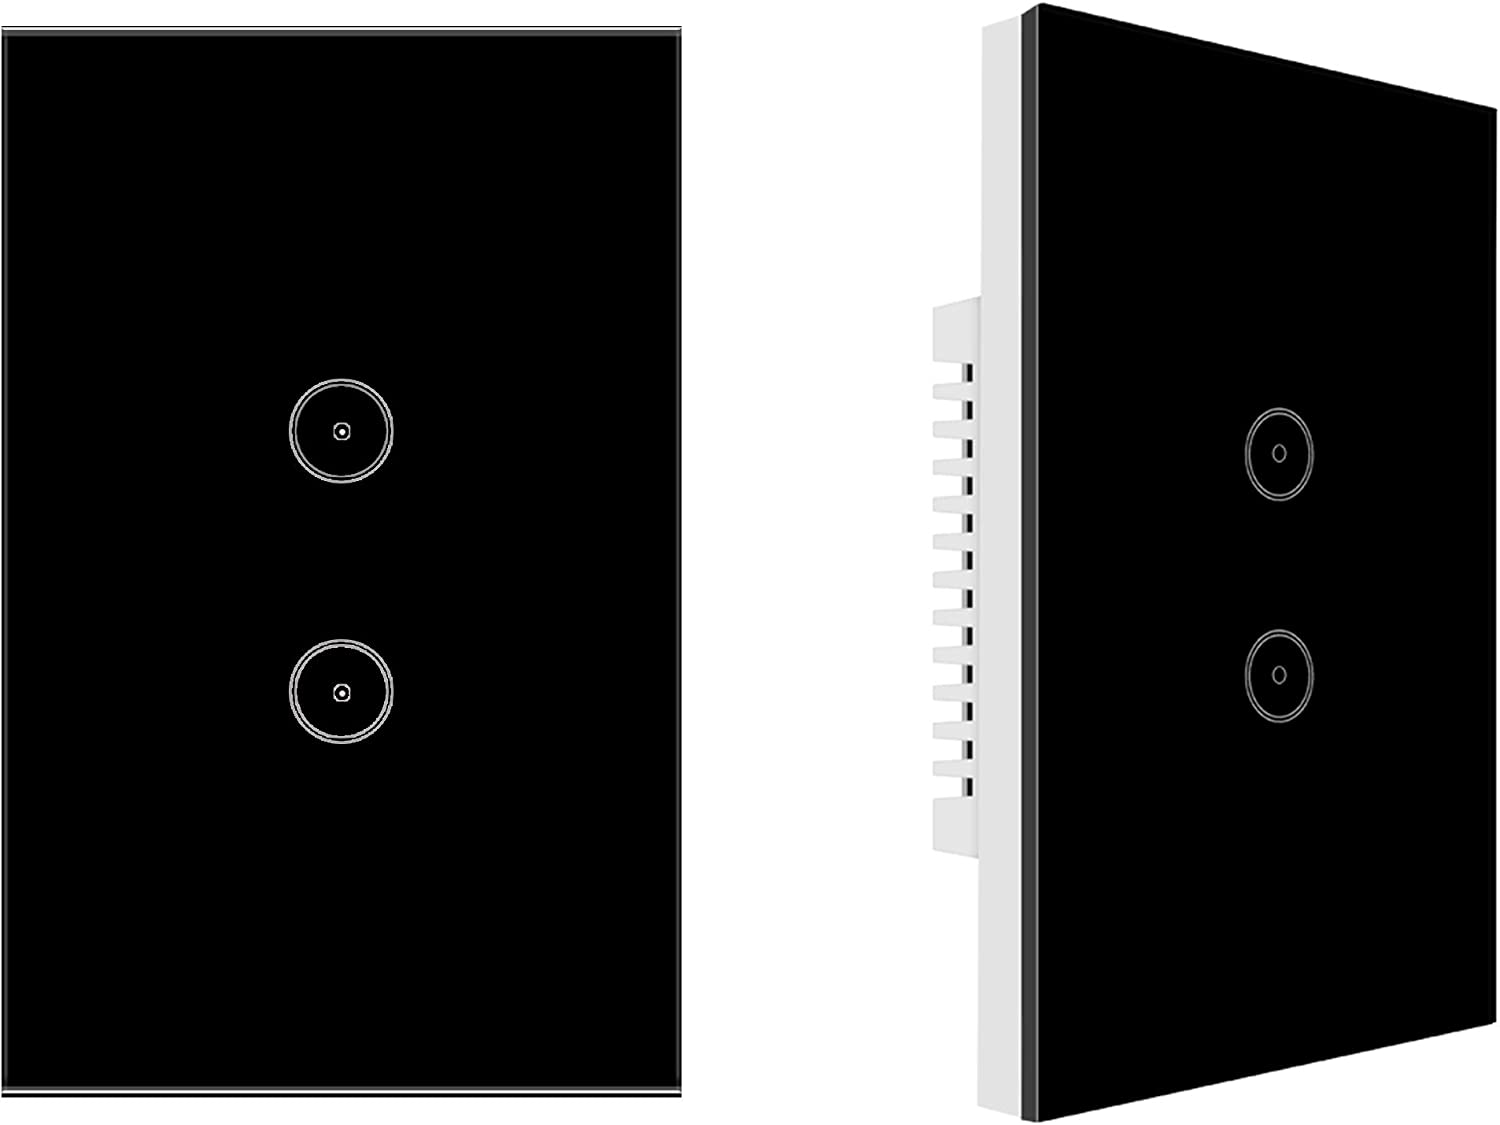 Jinvoo WiFi Wall Light Touch Panel Switch, Remote Control with Smart Phone,No Hub Required, AC 120V, Compatiable with Alexa Echo, Works with Google Home (2gang-2pack-Black)